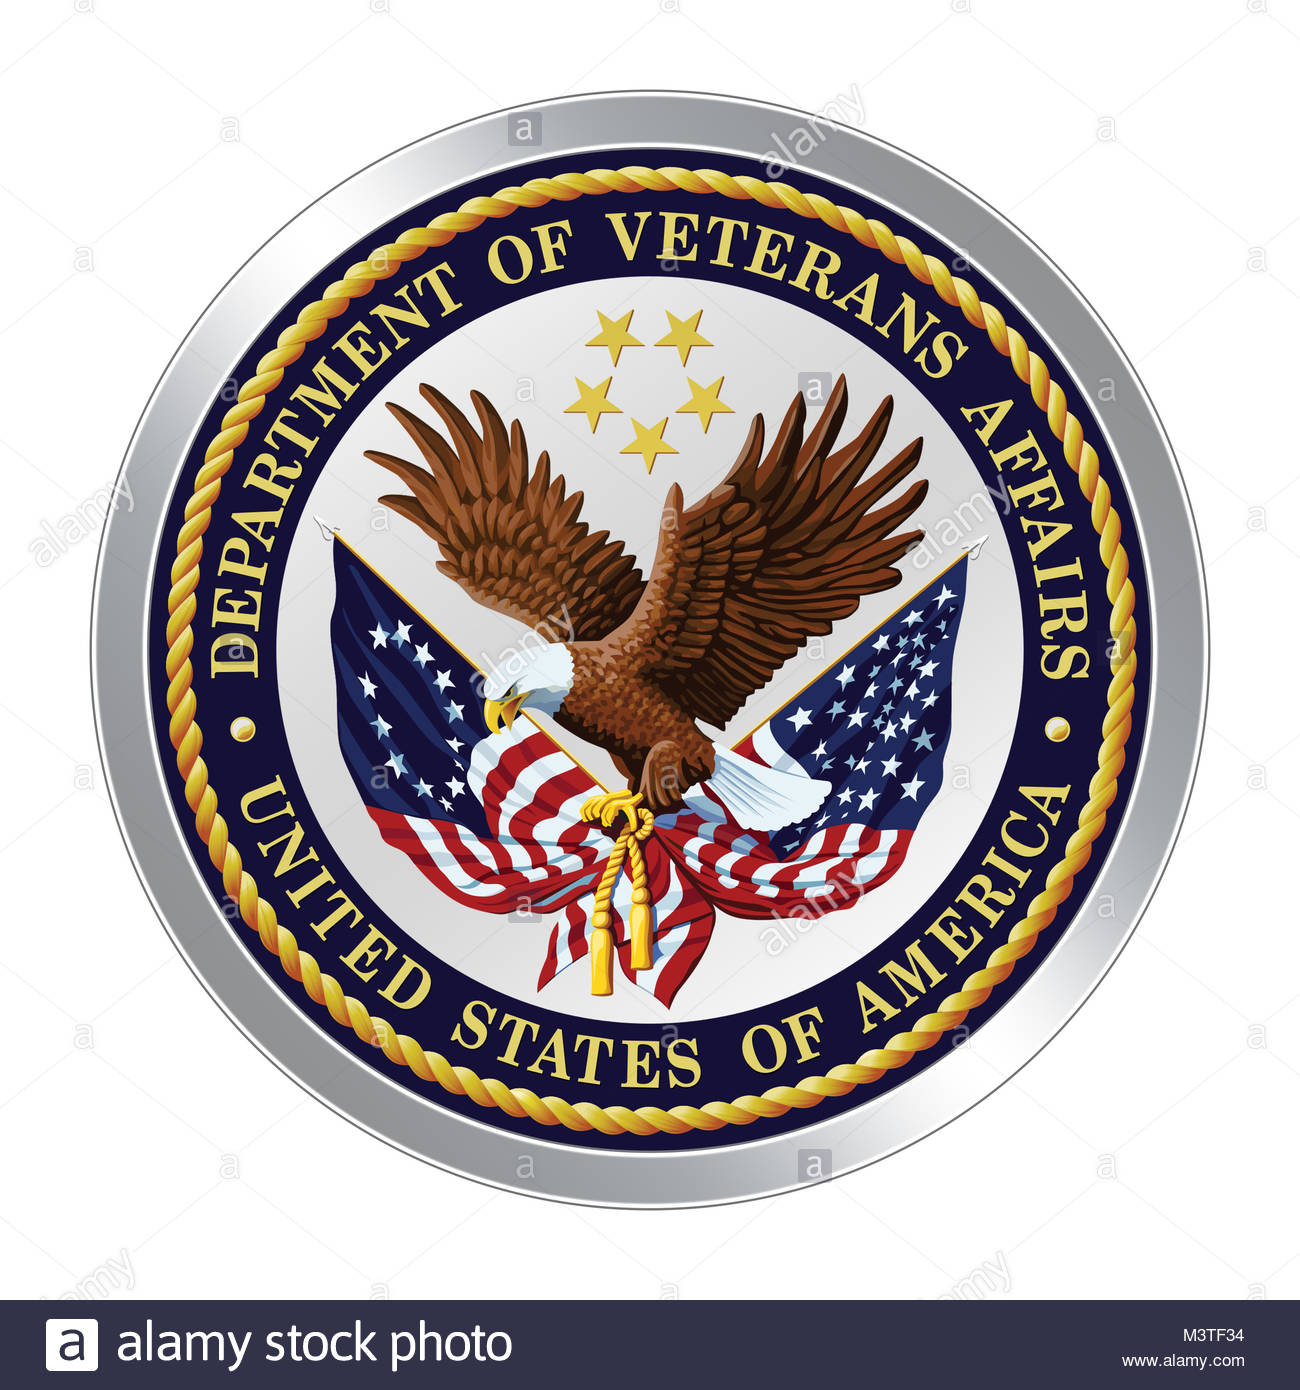 United States Department of Veterans Affairs VA icon logo button - Stock Image